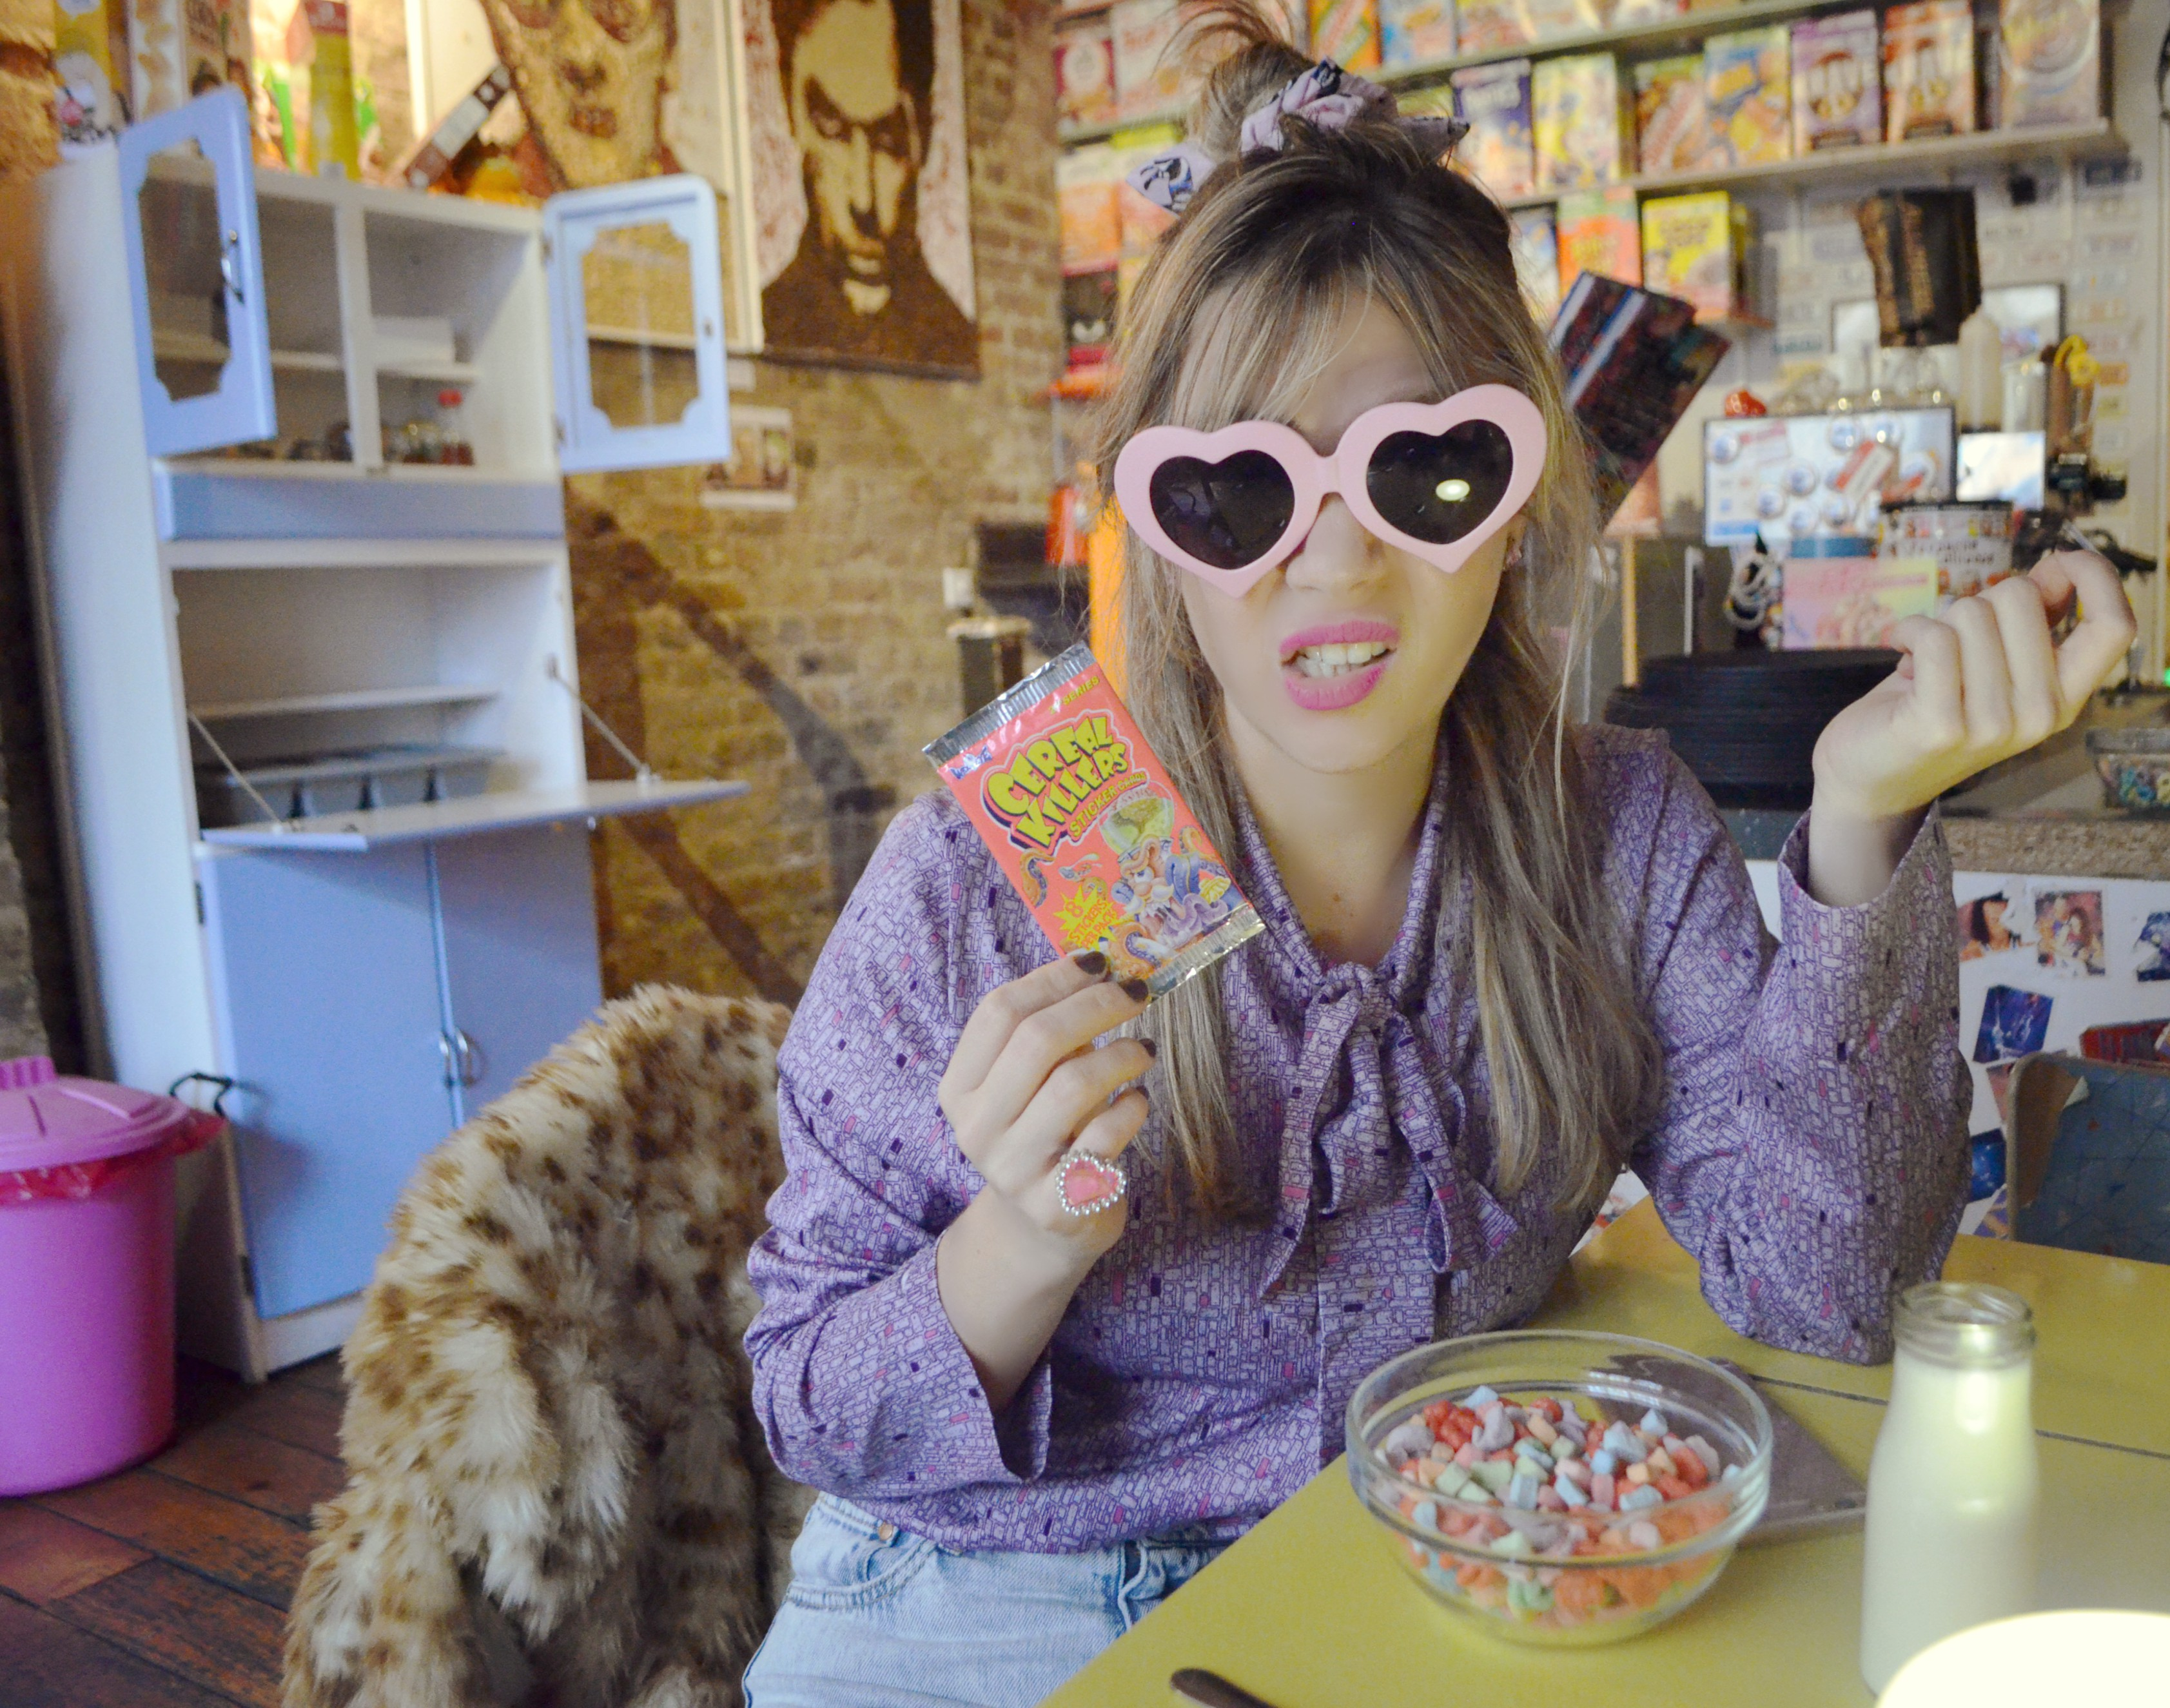 cereal-killer-cafe-london-blog-de-moda-fashionista-chicadicta-chic-adicta-vintage-style-hipster-girl-heart-sunglasses-piensaenchic-piensa-en-chic